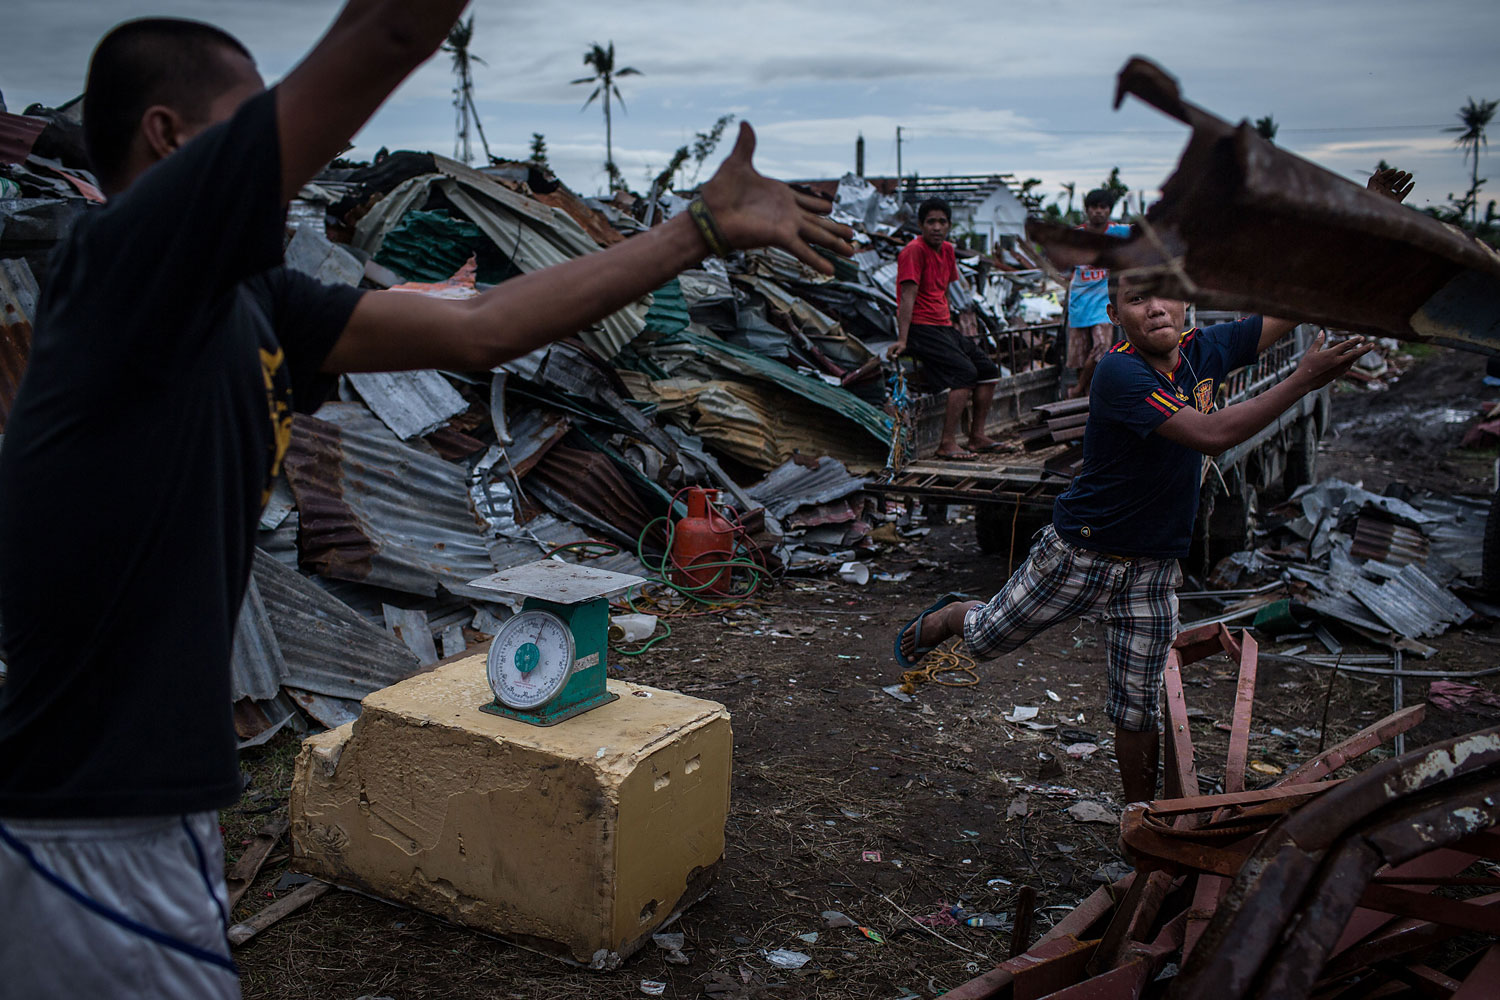 Workers at a junkyard throw scrap metal on a pile after weighing it on April 16, 2014 in Tacloban.